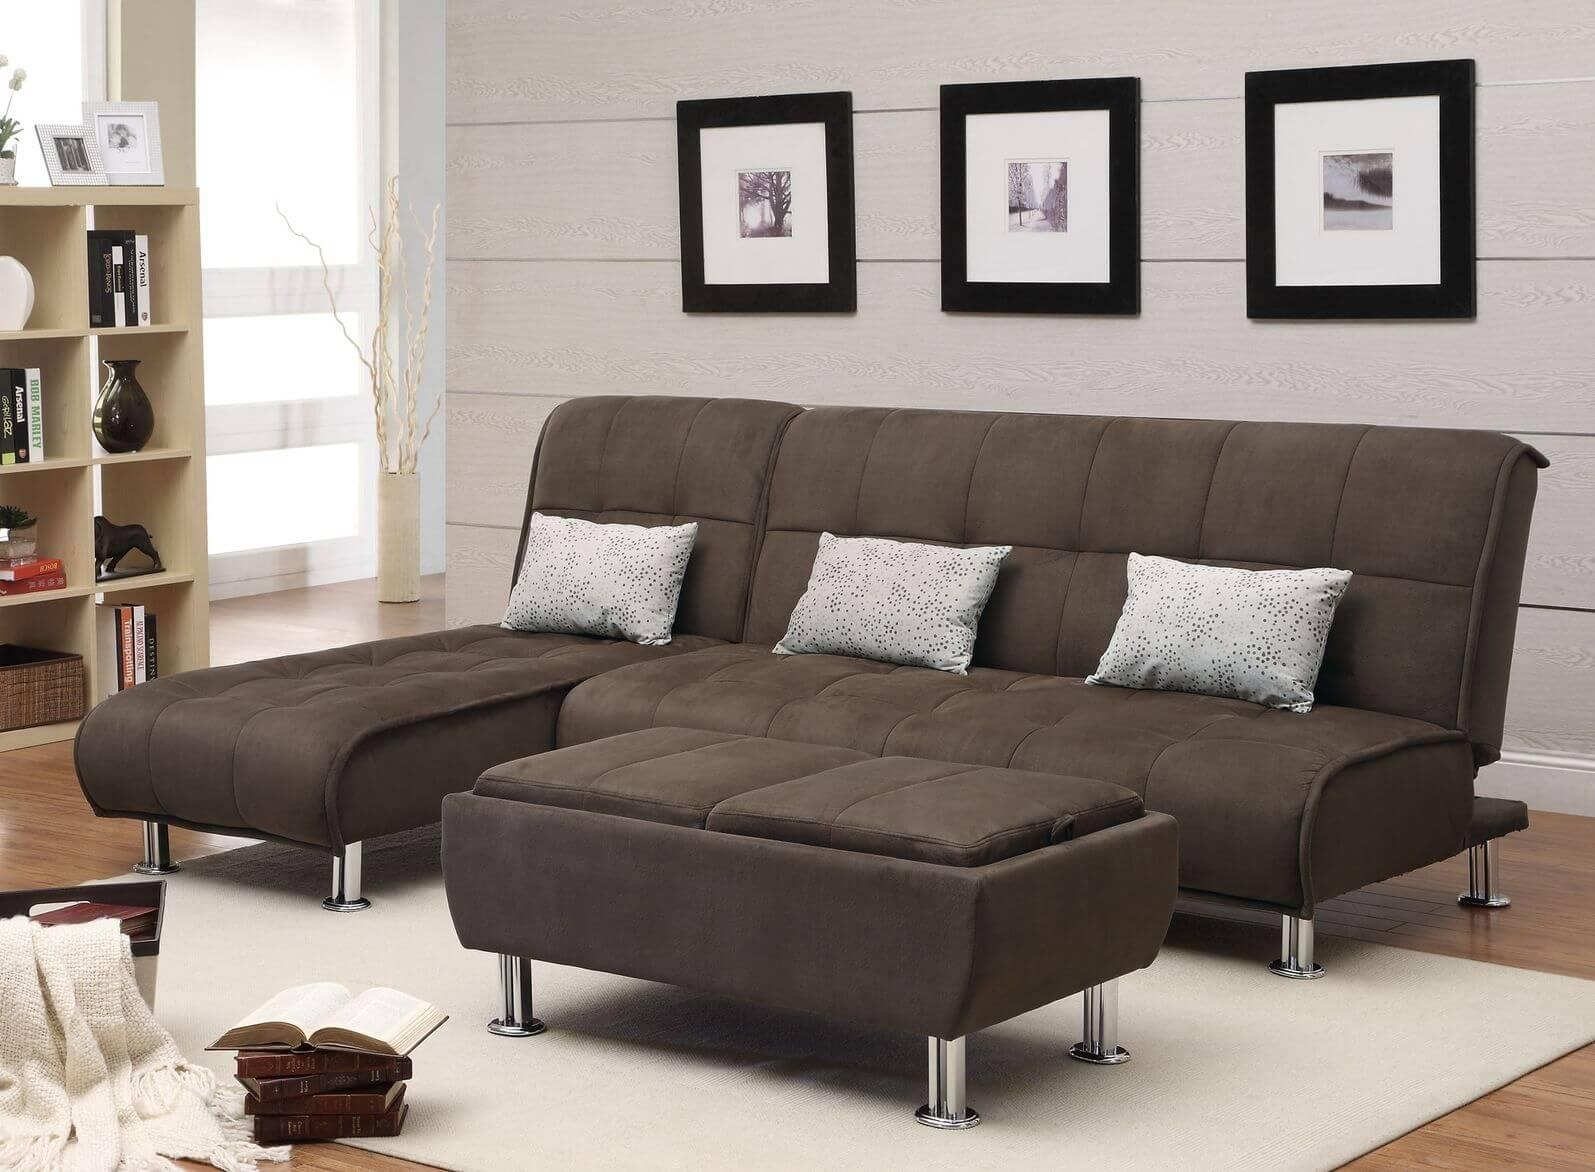 Coffee Table For Sectional Sofa With Chaise Top Ln8 | Umpsa 78 Sofas With Coffee Table For Sectional Sofa (View 15 of 15)